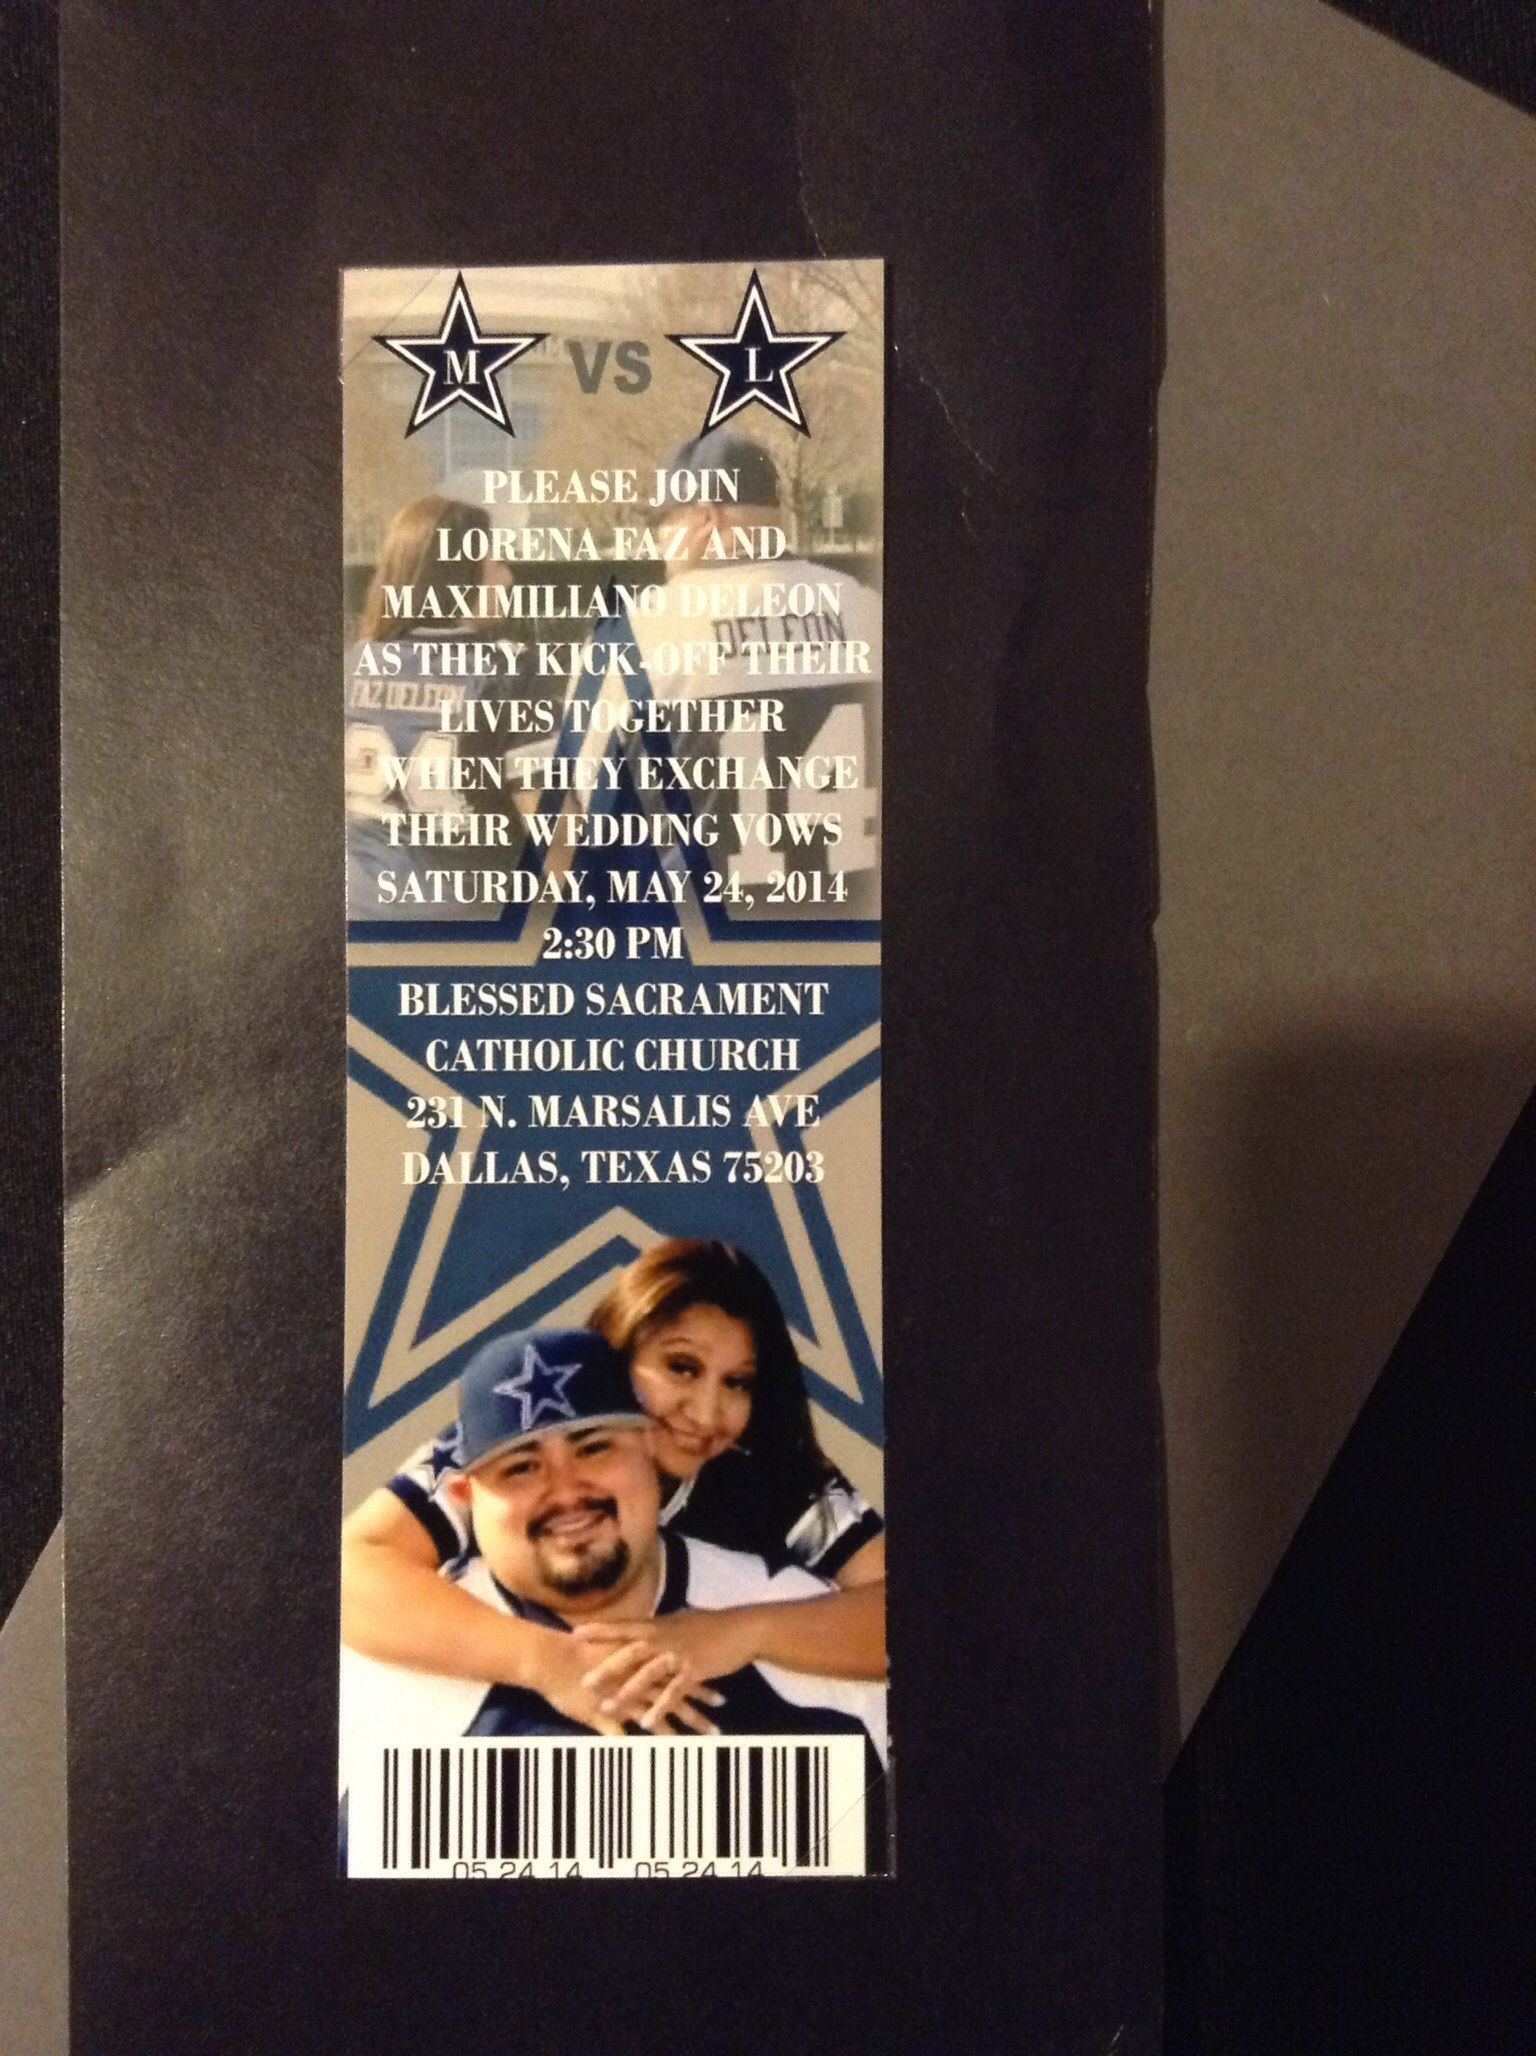 Dallas Cowboys Ticket Wedding Invitation Dallas Cowboys Wedding